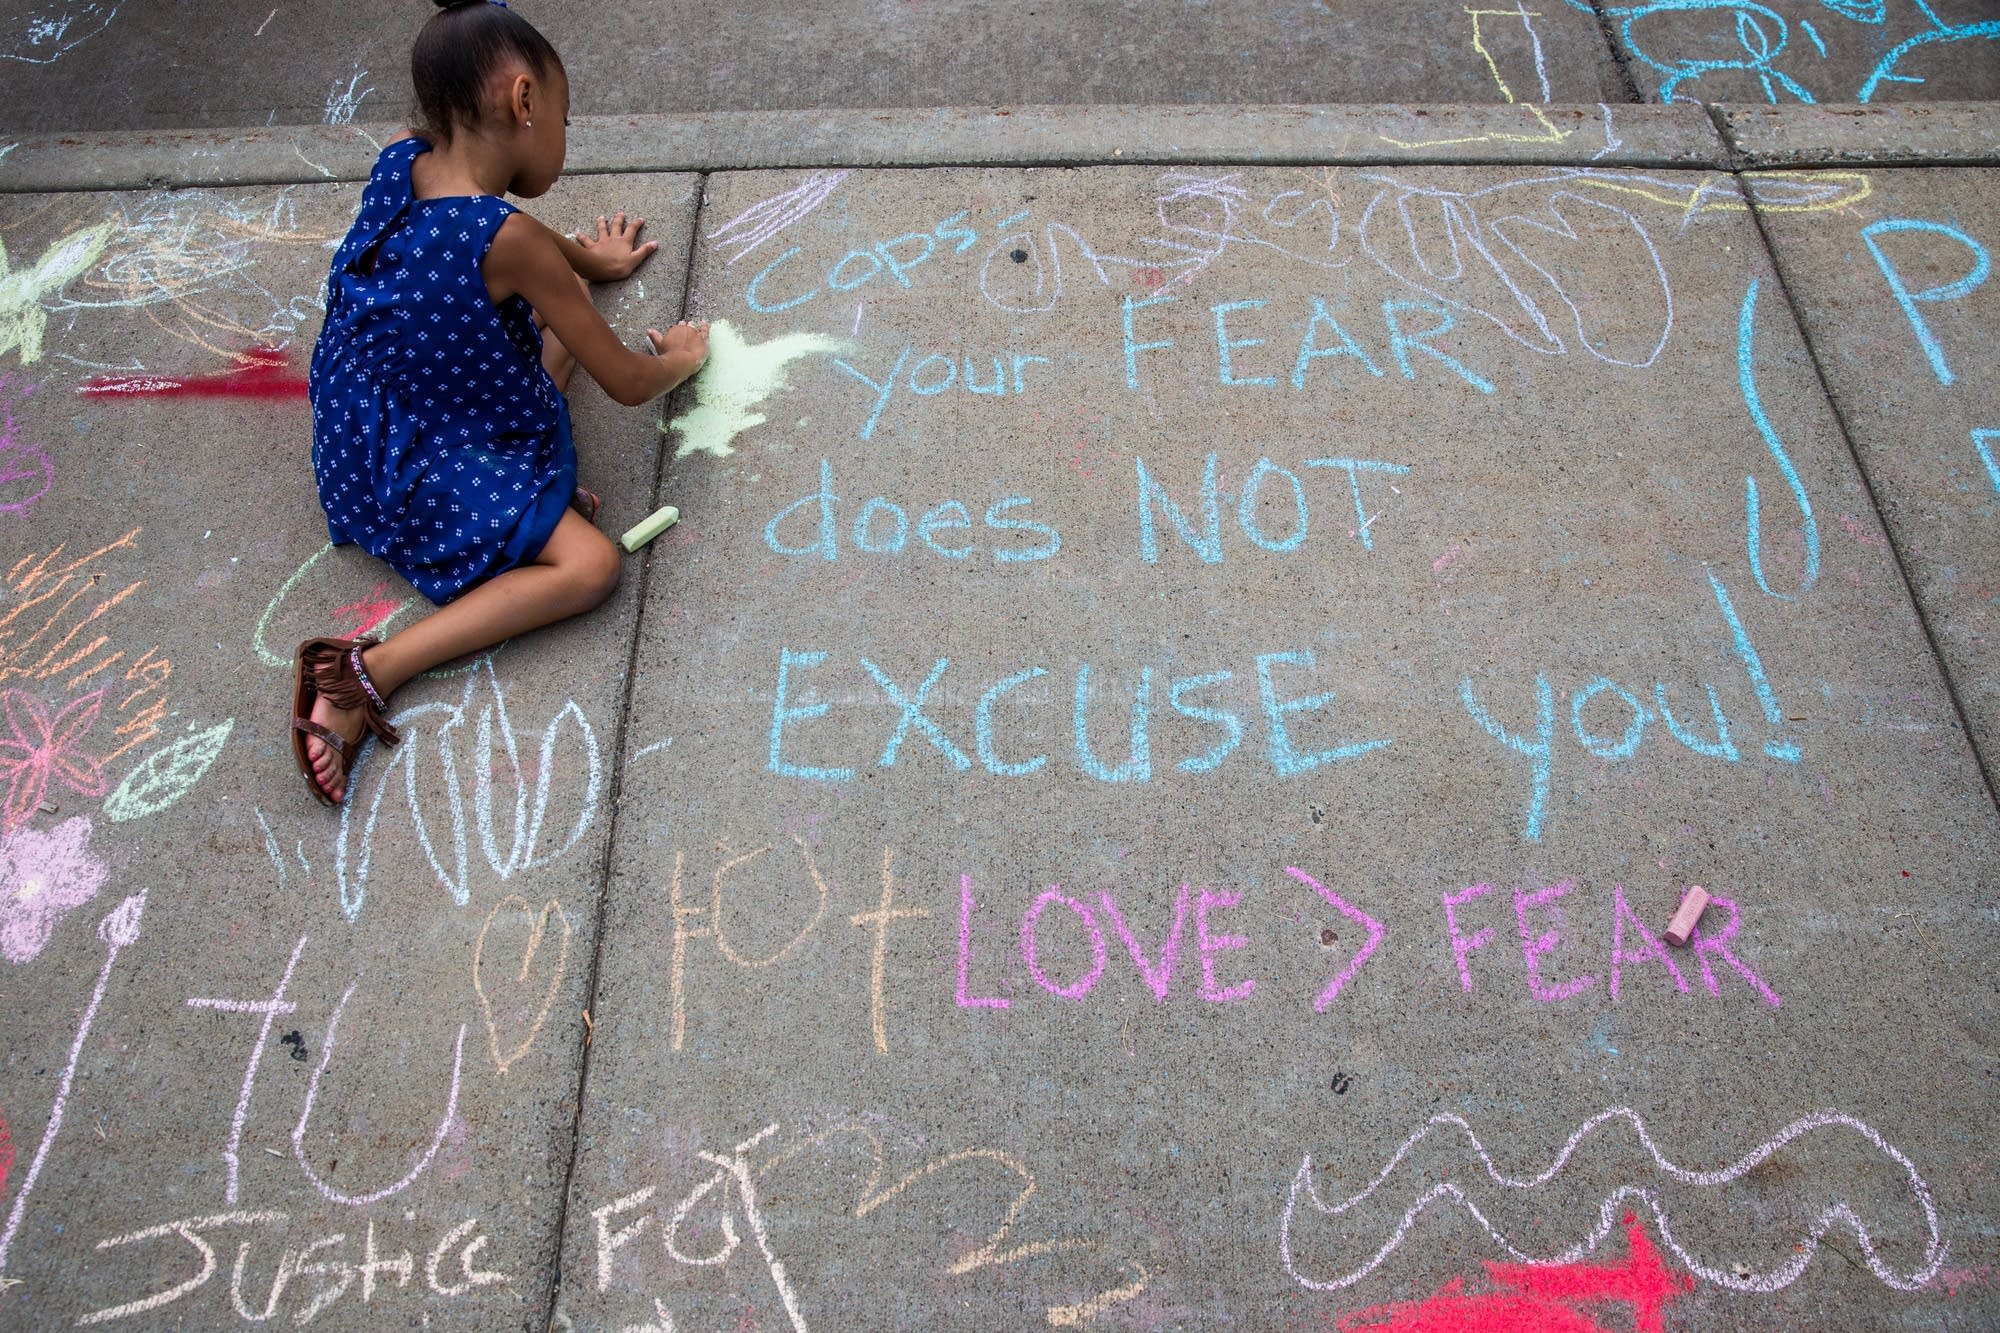 A young protester draws with chalk.